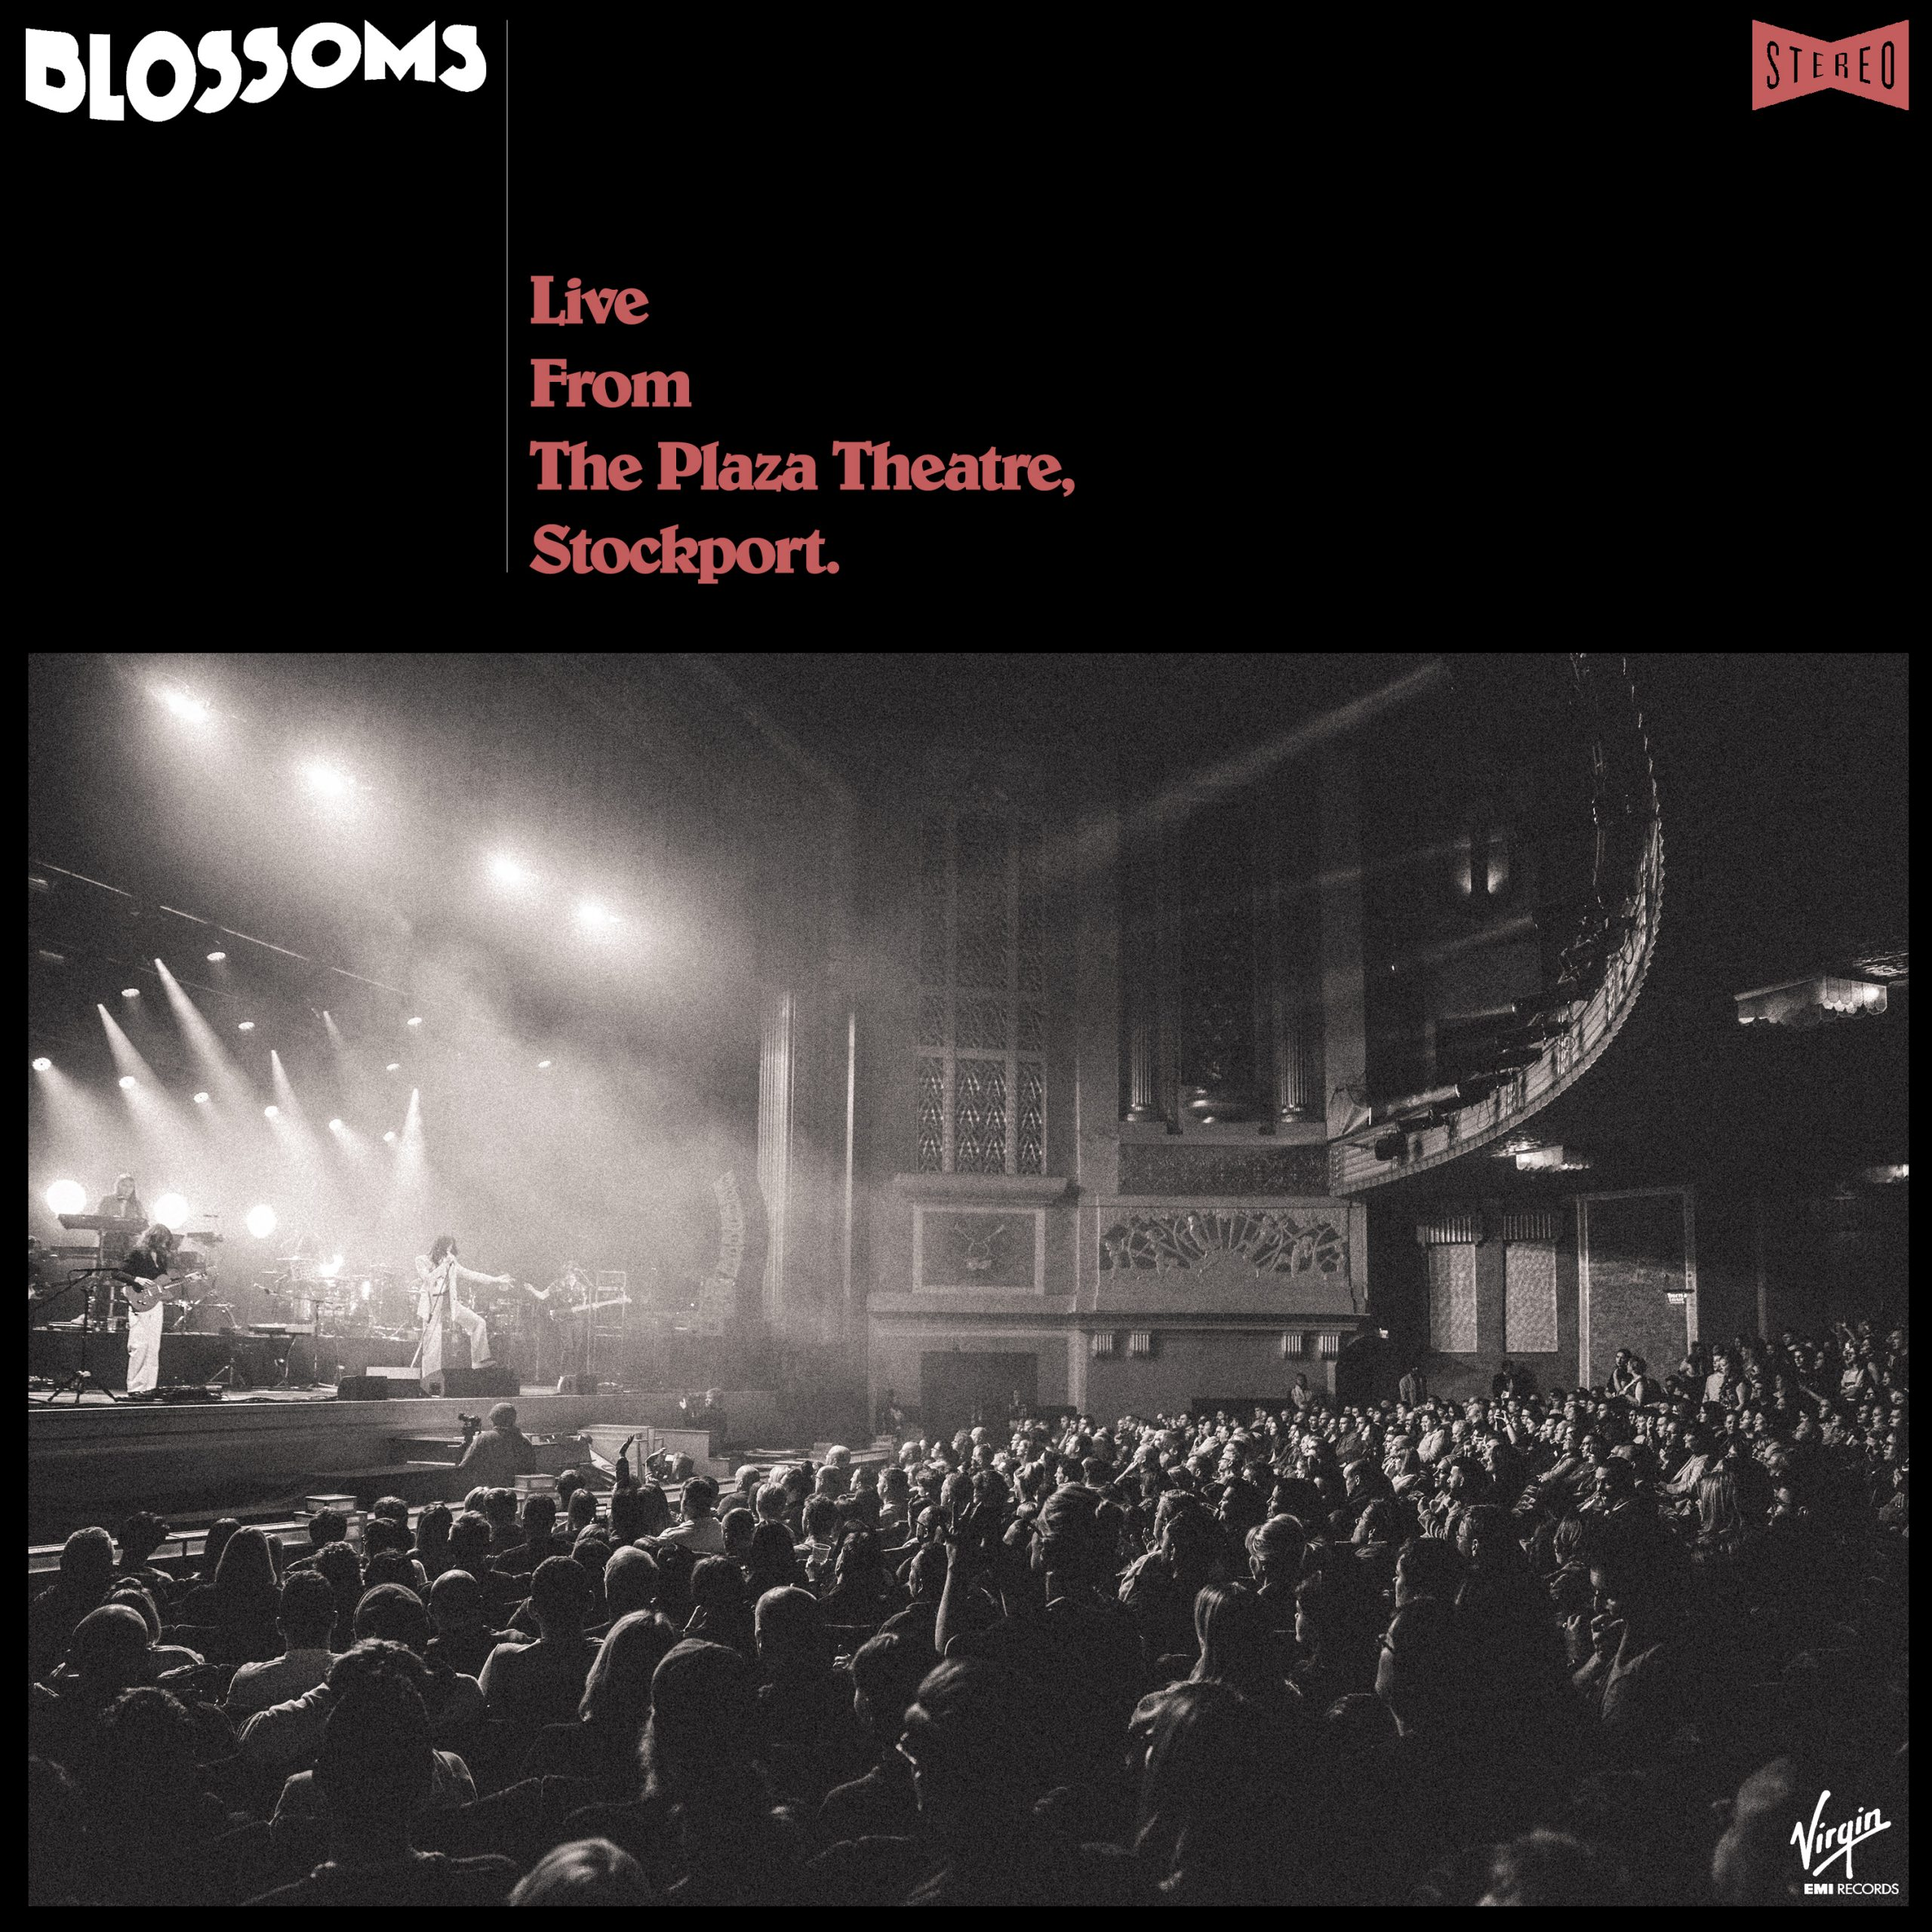 BLOSSOMS reveal live version of their latest single 'If You Think This Is Real Life'